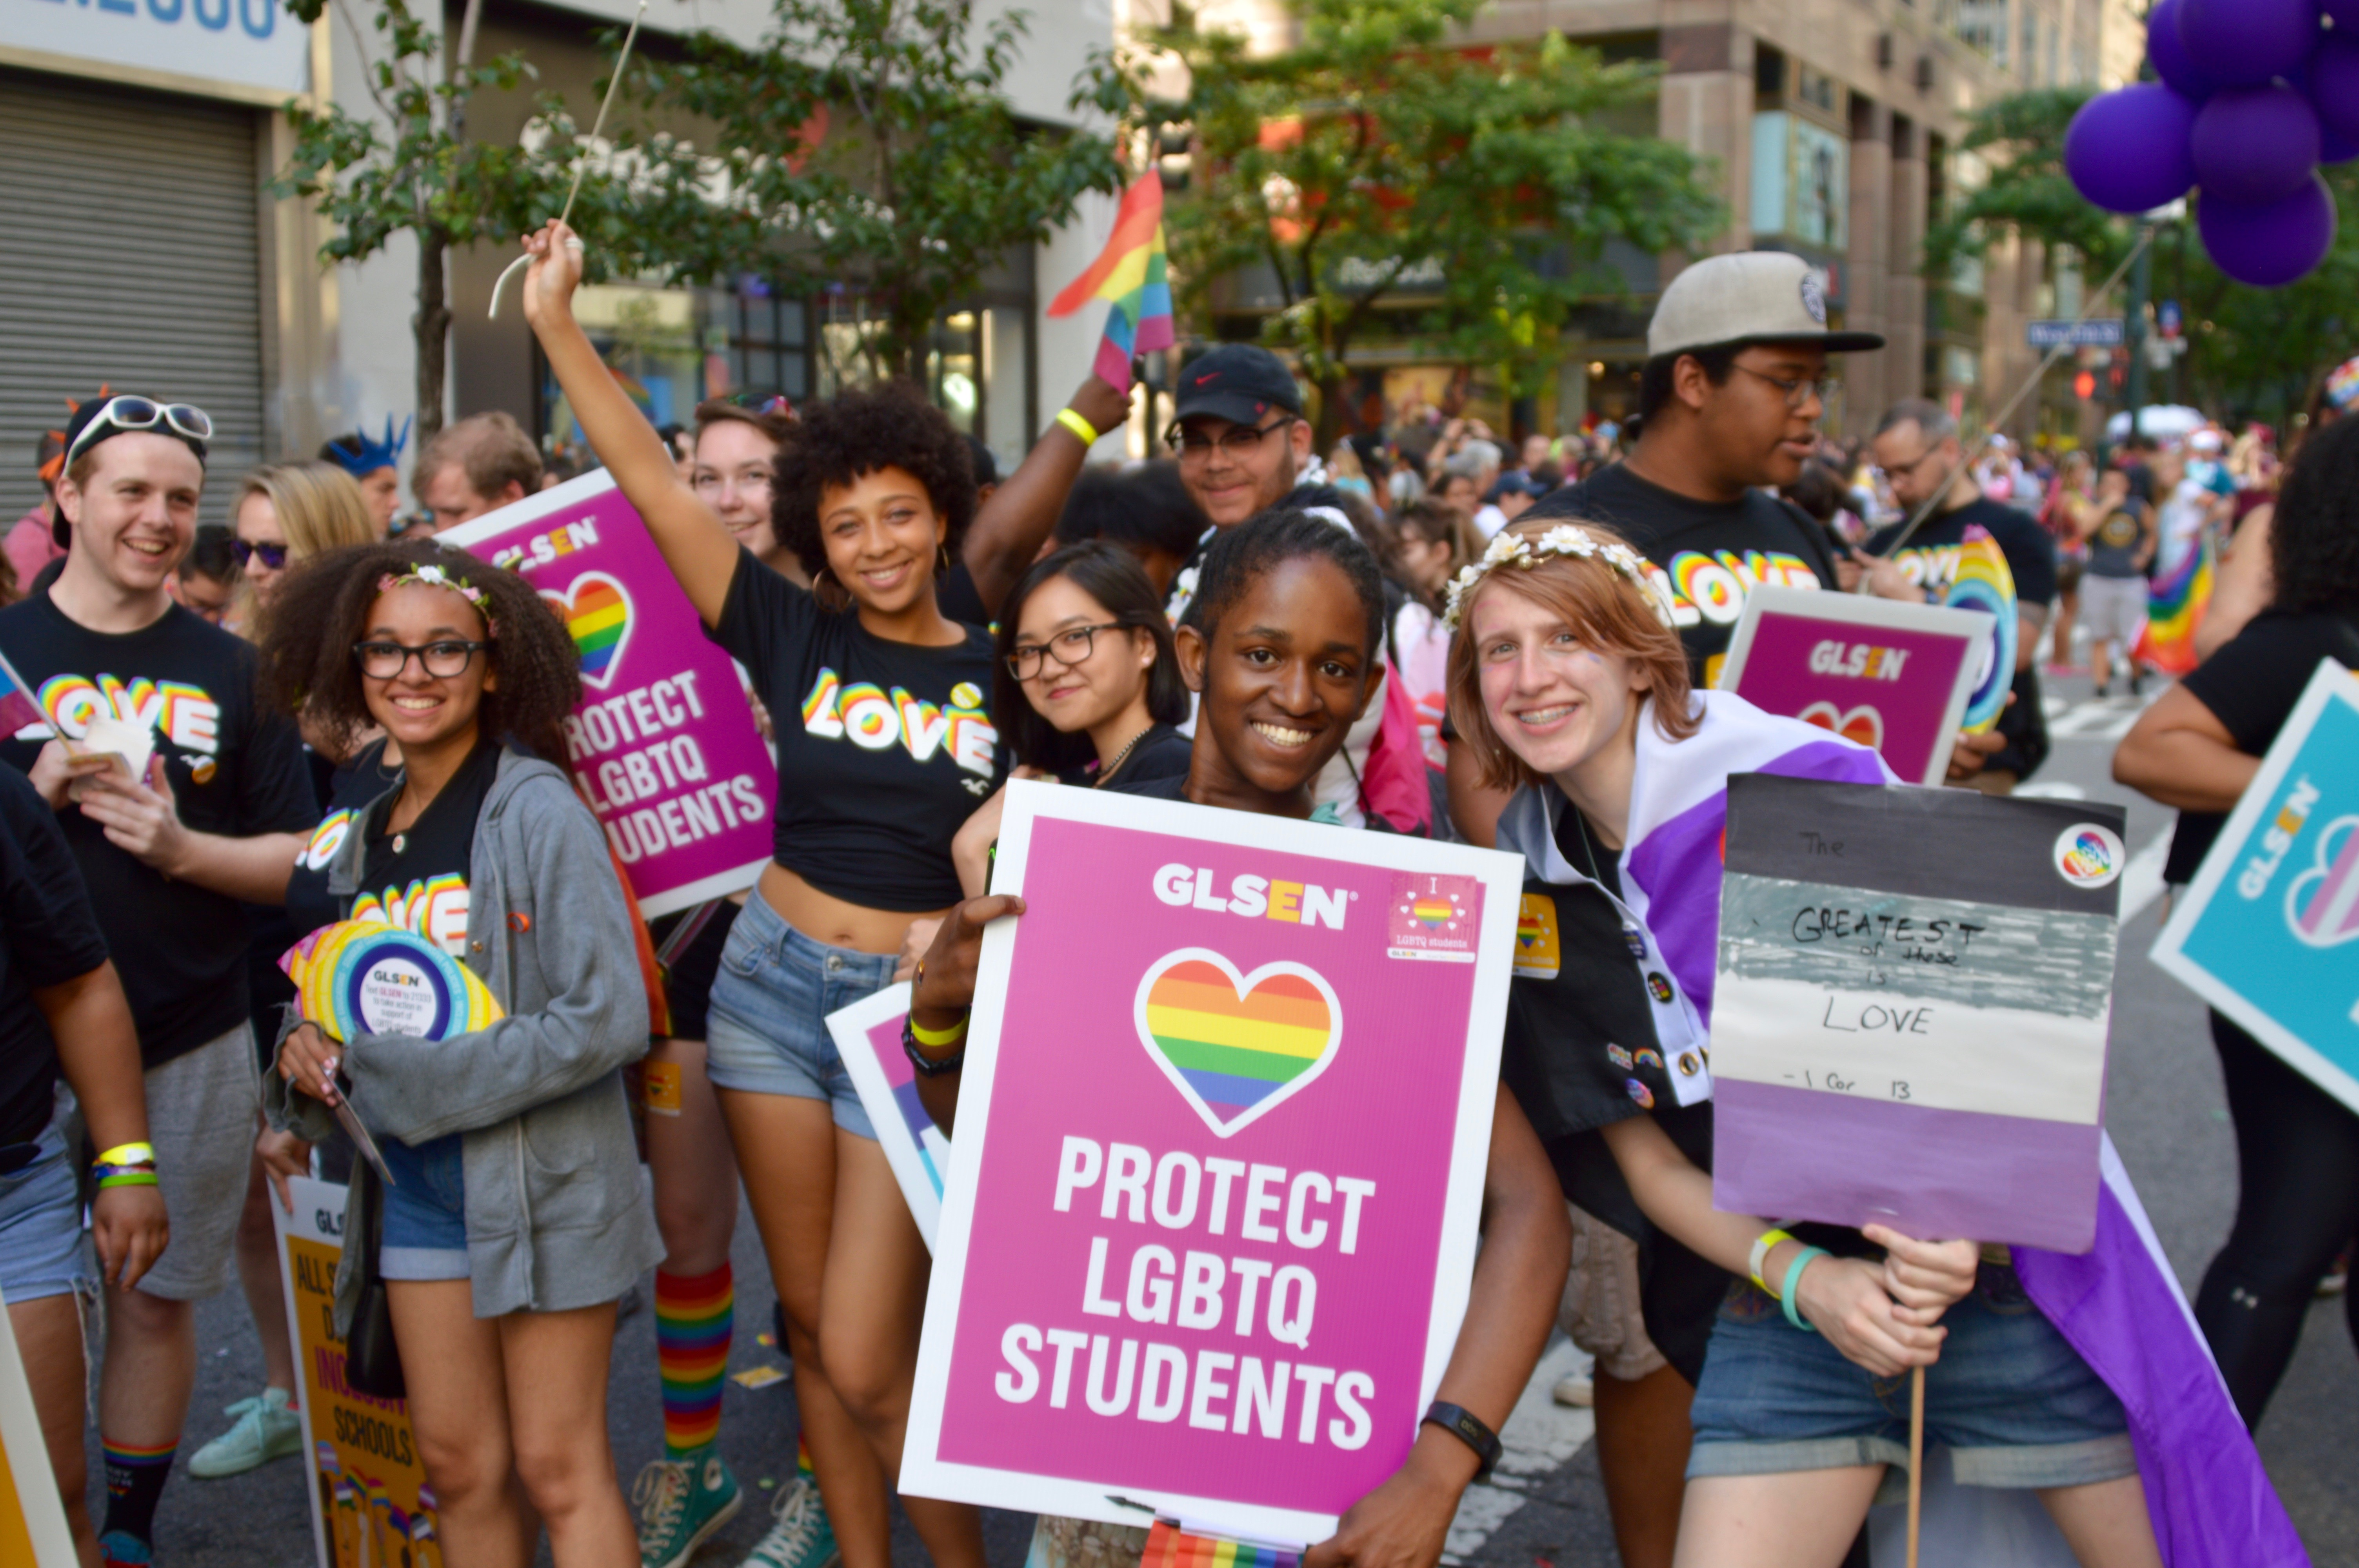 A group of student vounteers smile at the camera while marching in the 2018 NYC Pride March. They wear GLSEN Love shirts and hold up GLSEN posters that read: Protect LGBTQ Students.